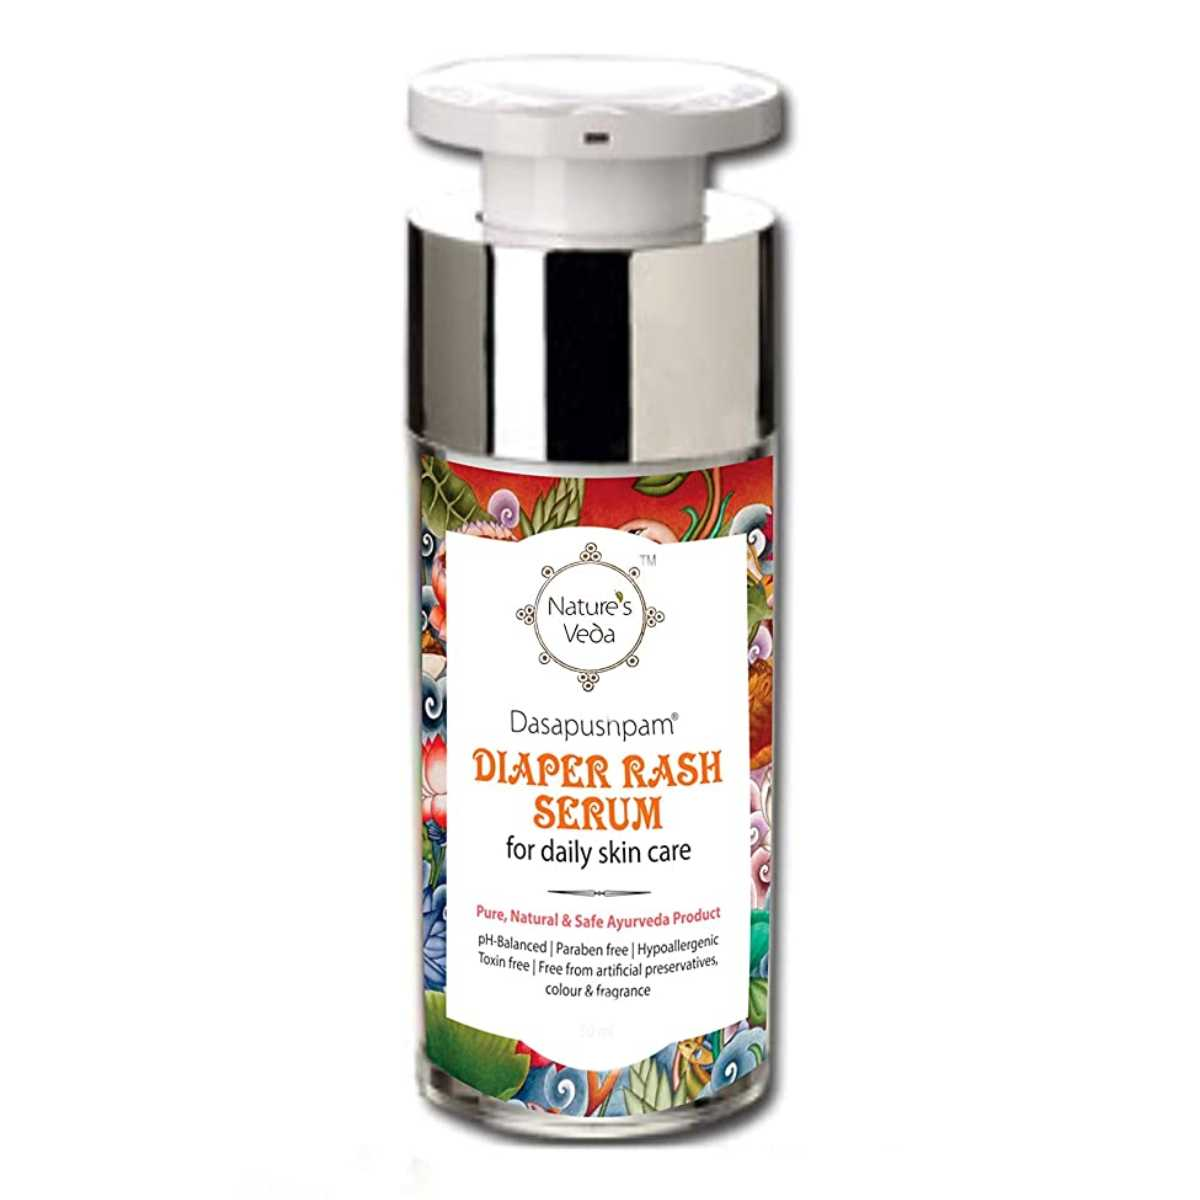 Nature's Veda Dasapuspam Diaper Rash Serum